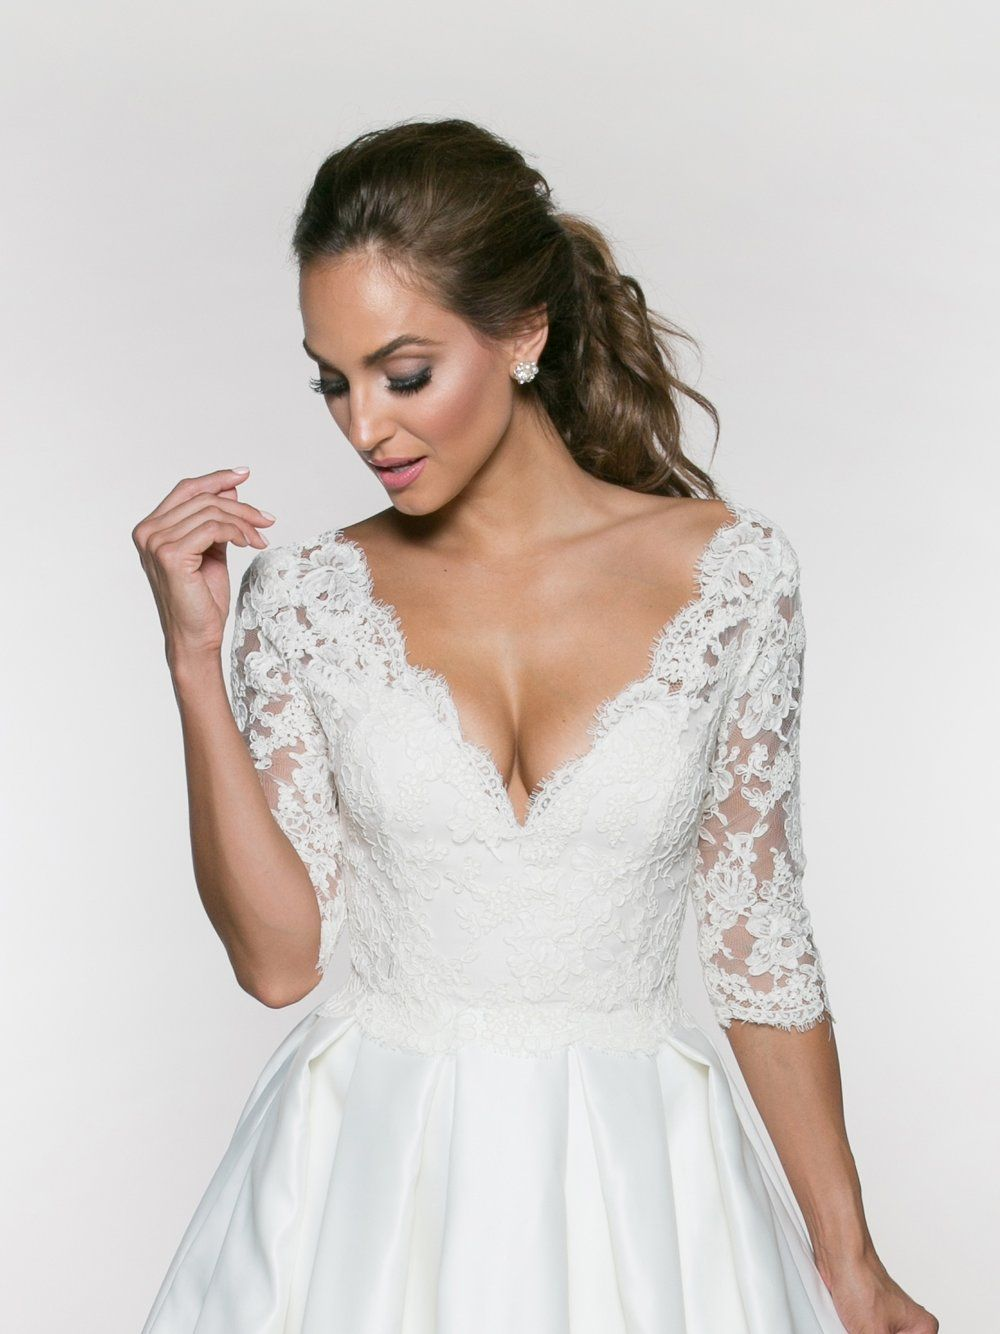 Bridal Add On Bodice Lace Top Wedding Dress Gown V Neck